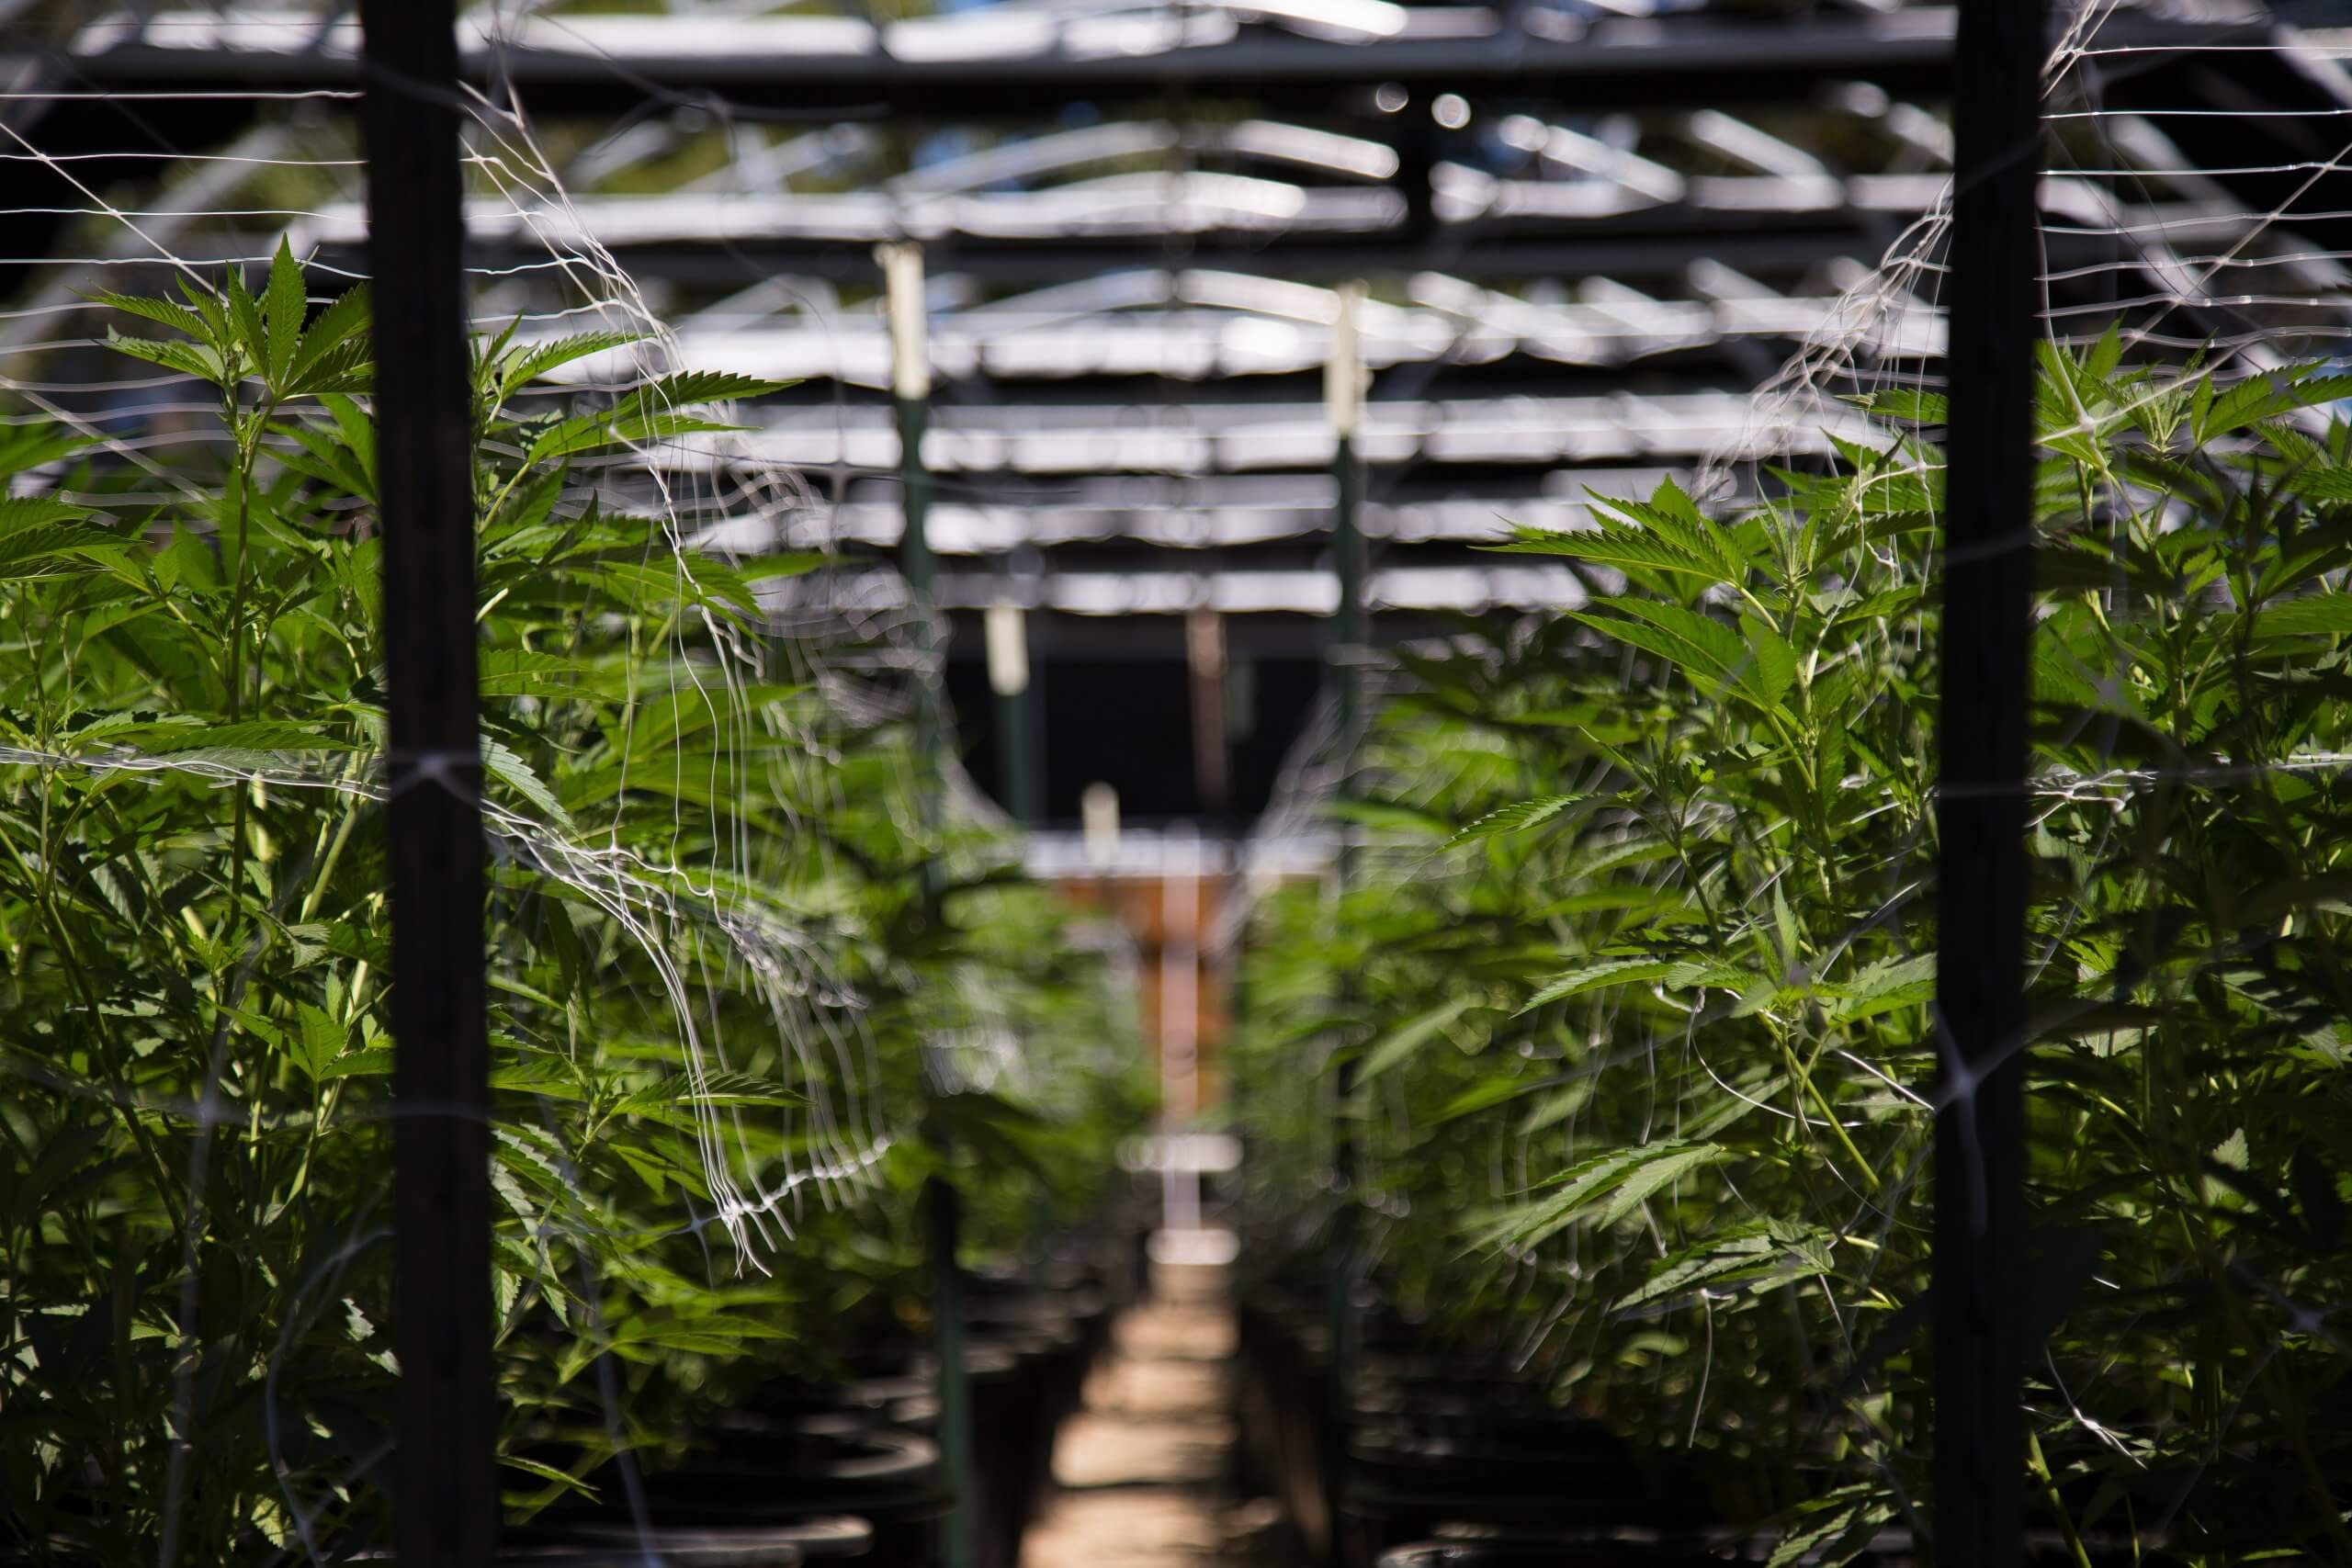 cannabis plants in an industrial dacility